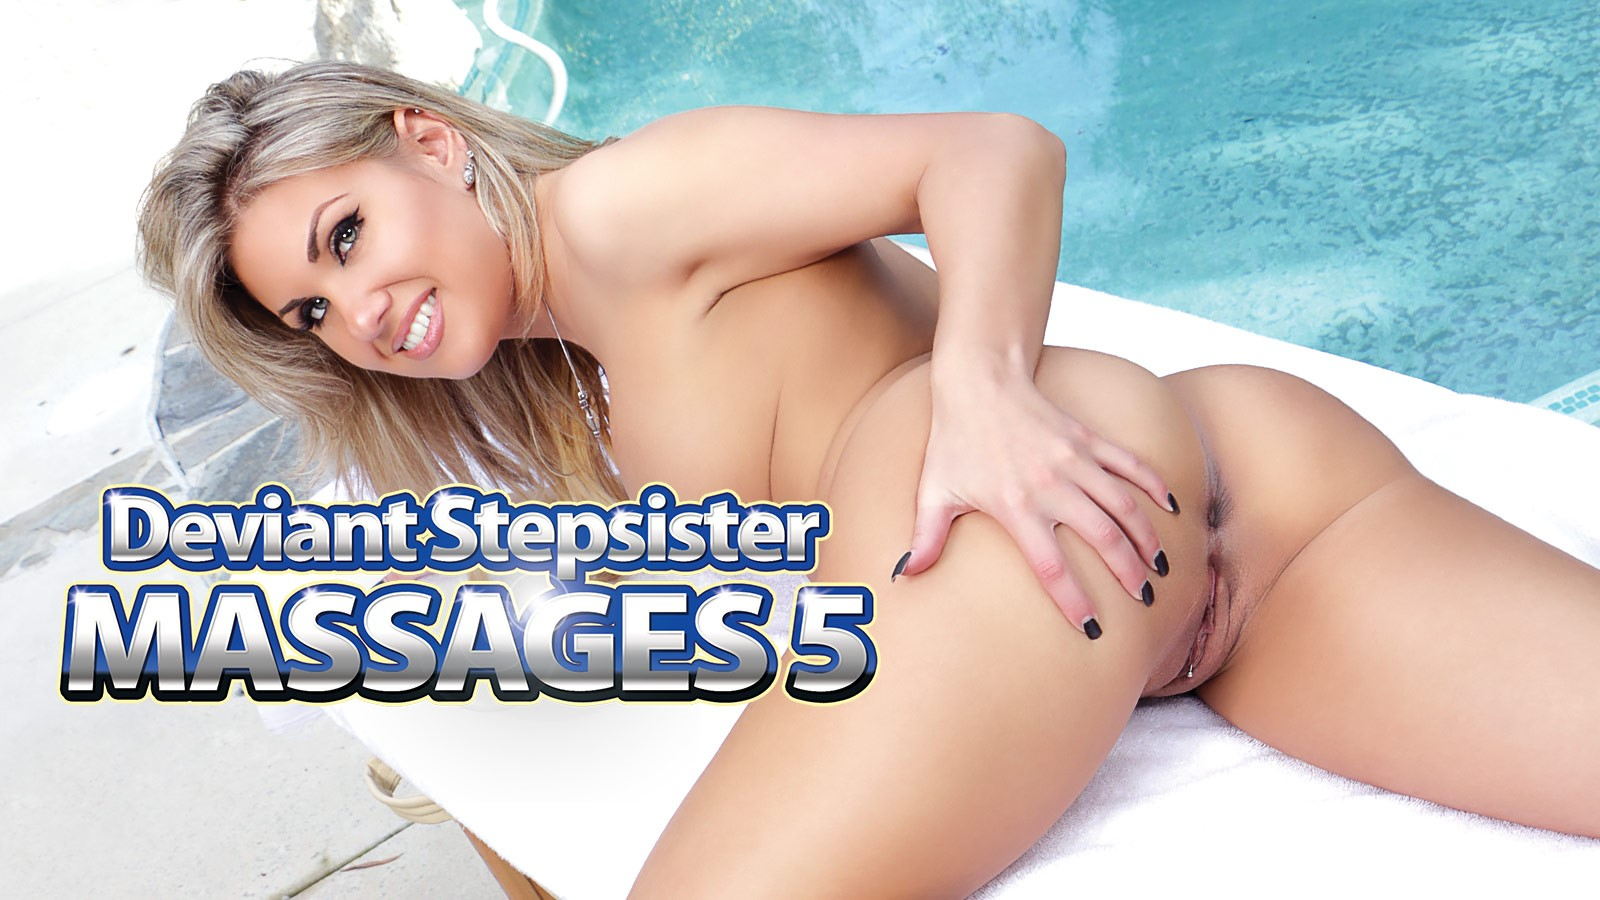 Deviant step sister massages from lethal hardcore